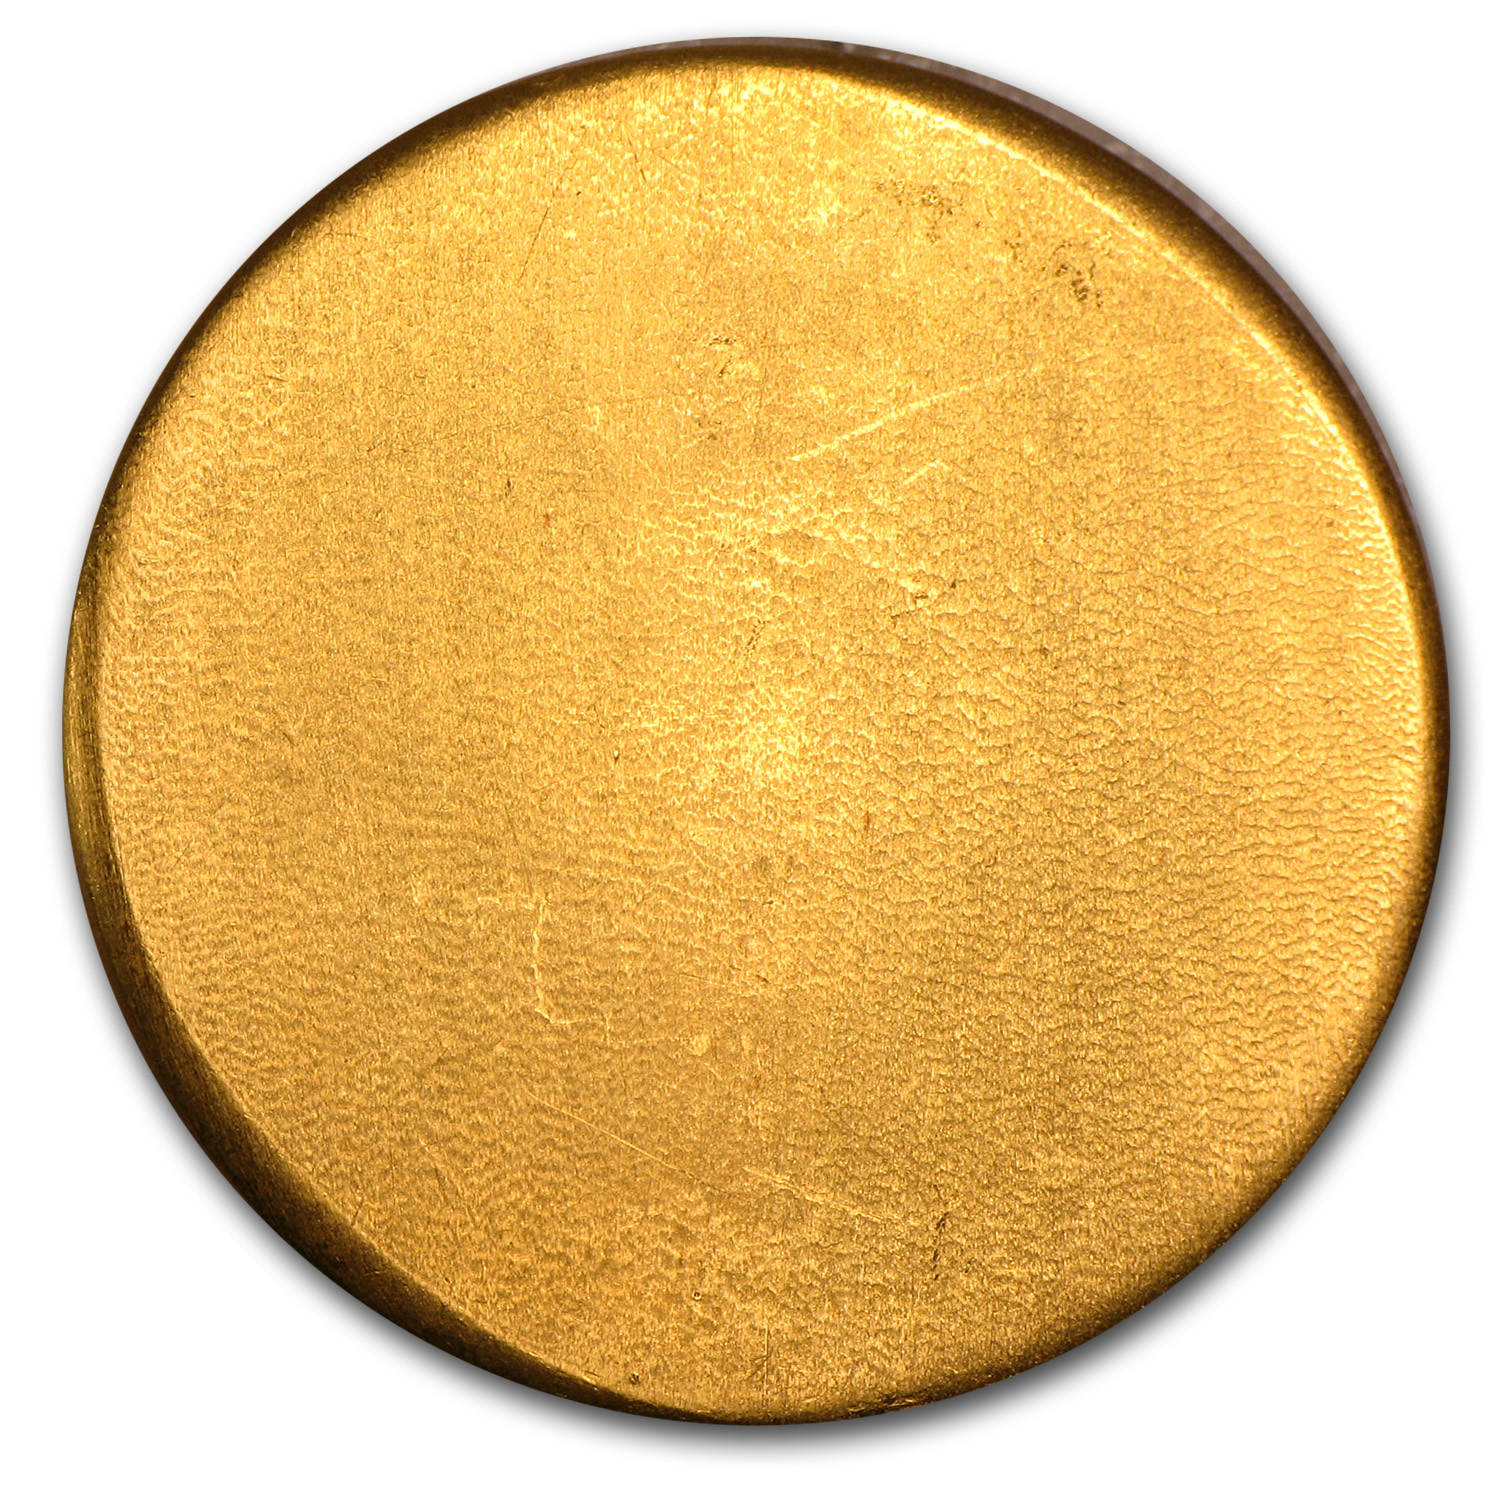 1 oz Gold Rounds - Hoover & Strong Gold Button